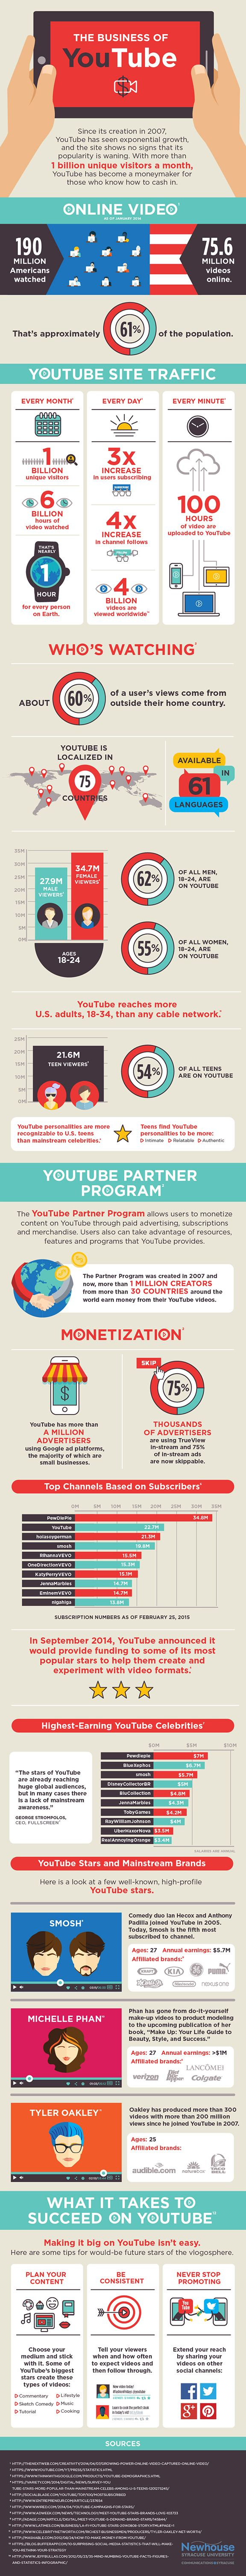 30+ Fascinating YouTube Facts That May Surprise You via @angela4design #infographic #socialmedia